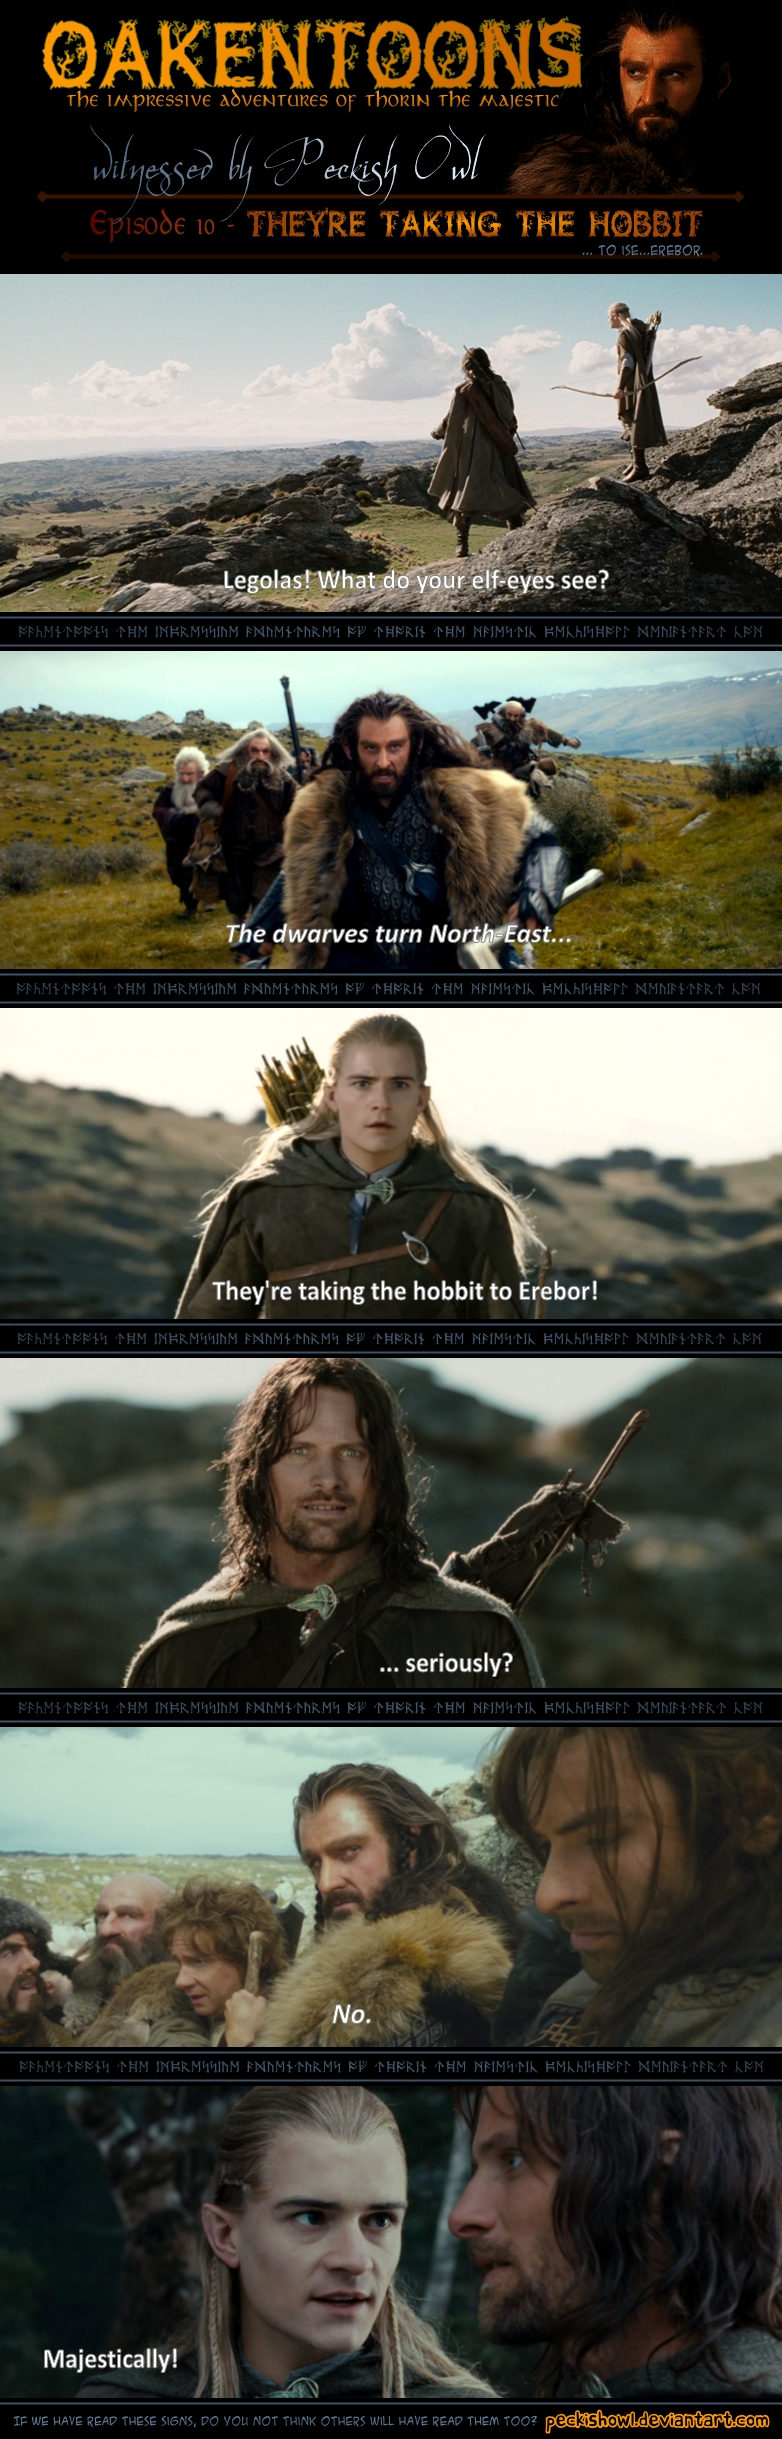 Oakentoon #10: They're taking the hobbit by PeckishOwl